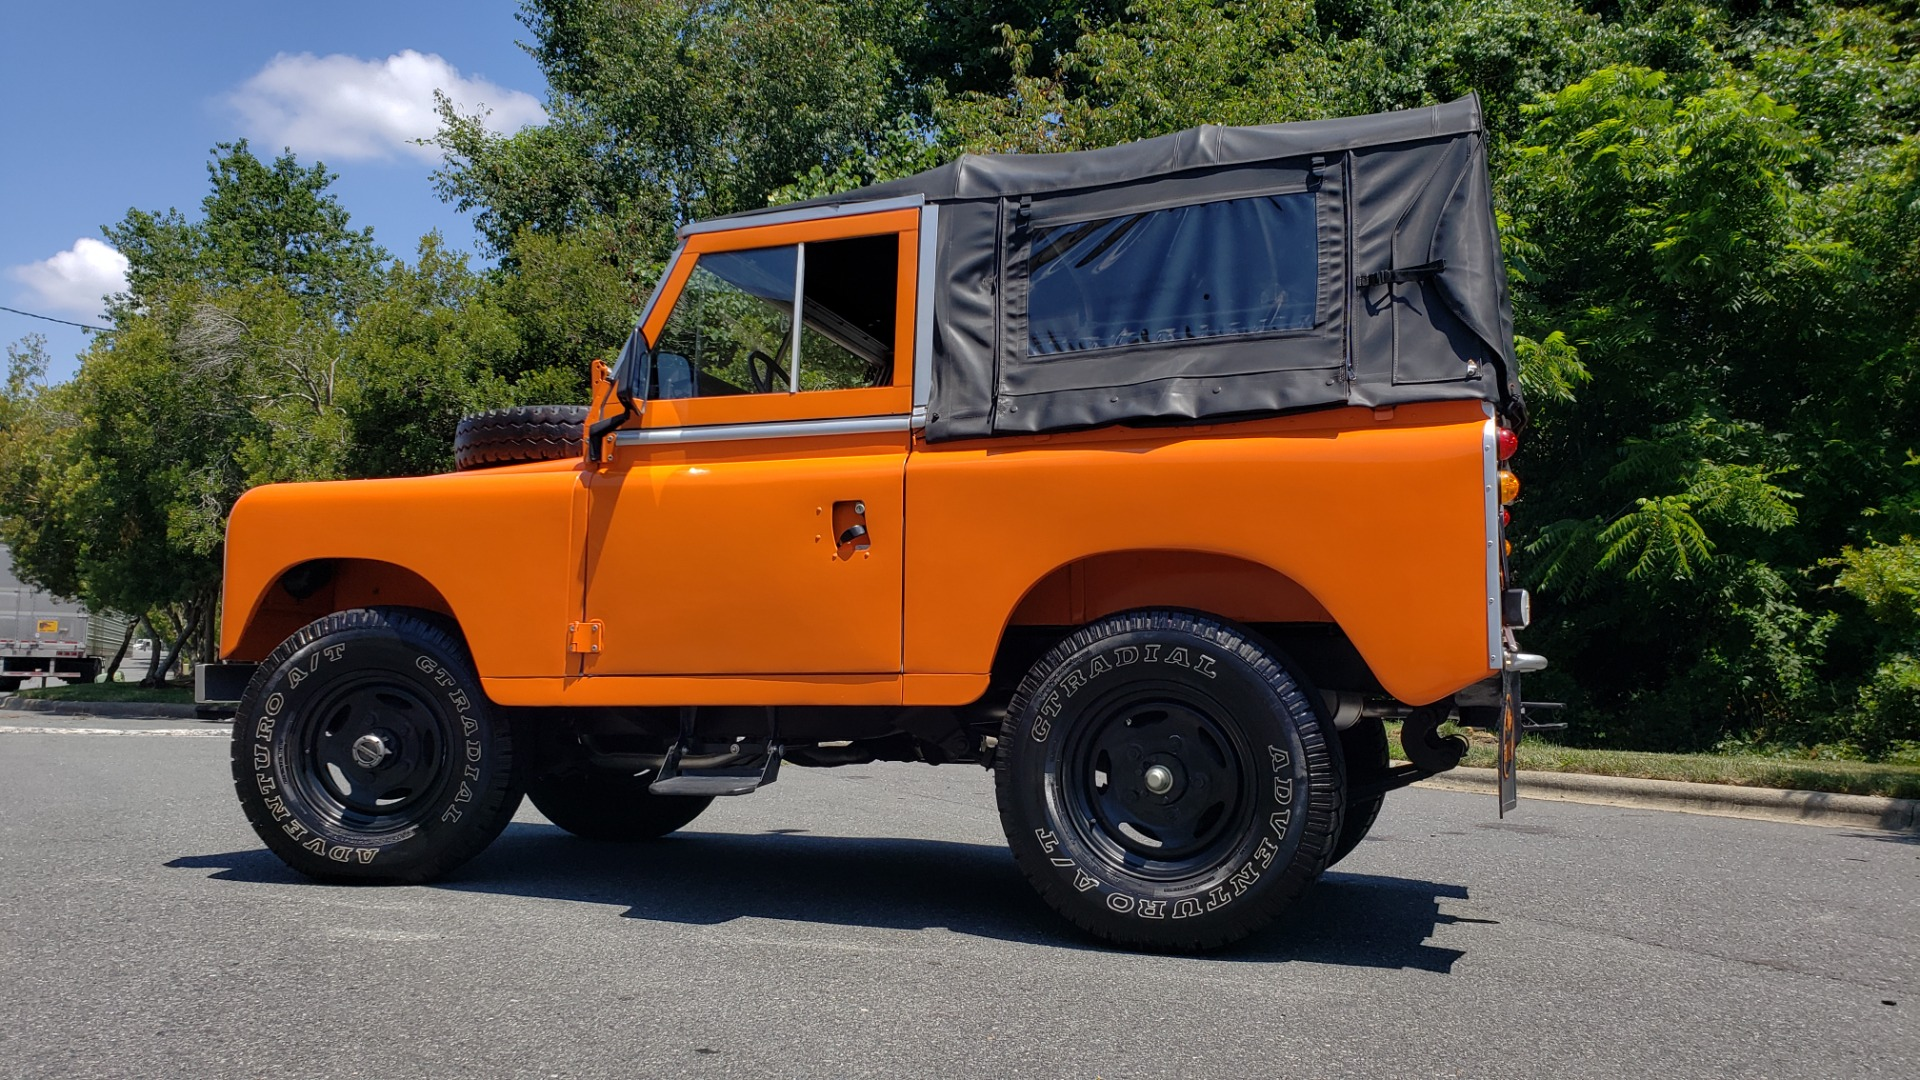 Used 1982 Land Rover SERIES 3 4X4 / SOFT-TOP / FULLY RESTORED / RUNS GREAT for sale $41,900 at Formula Imports in Charlotte NC 28227 7